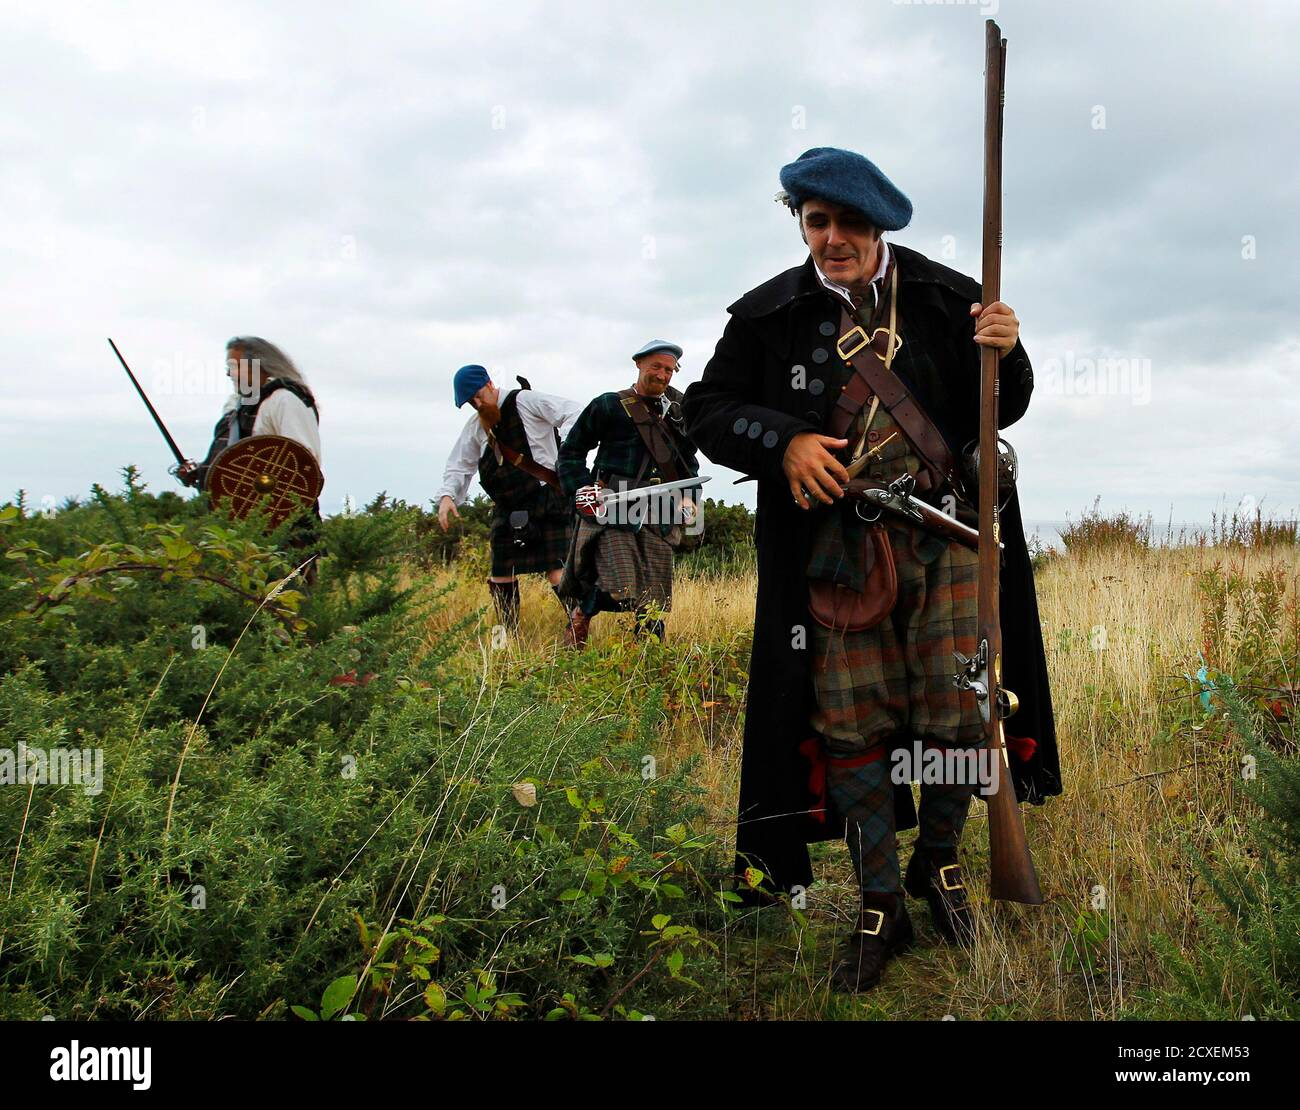 Jacobite Highlander re-enactors walk away after posing for photographers during a media event for the forthcoming Battle of Prestonpans re-enactment, in Prestonpans, East Lothian in Scotland September 21, 2010. The actors were in Prestonpans for a photocall to publicise this weekend's re-enactment of the Battle of Prestonpans from 1745 which saw Bonnie Prince Charlie and his army of Jacobite Highlanders defeat the British government troops lead by Sir John Cope. REUTERS/David Moir (BRITAIN - Tags: ENTERTAINMENT) Stock Photo